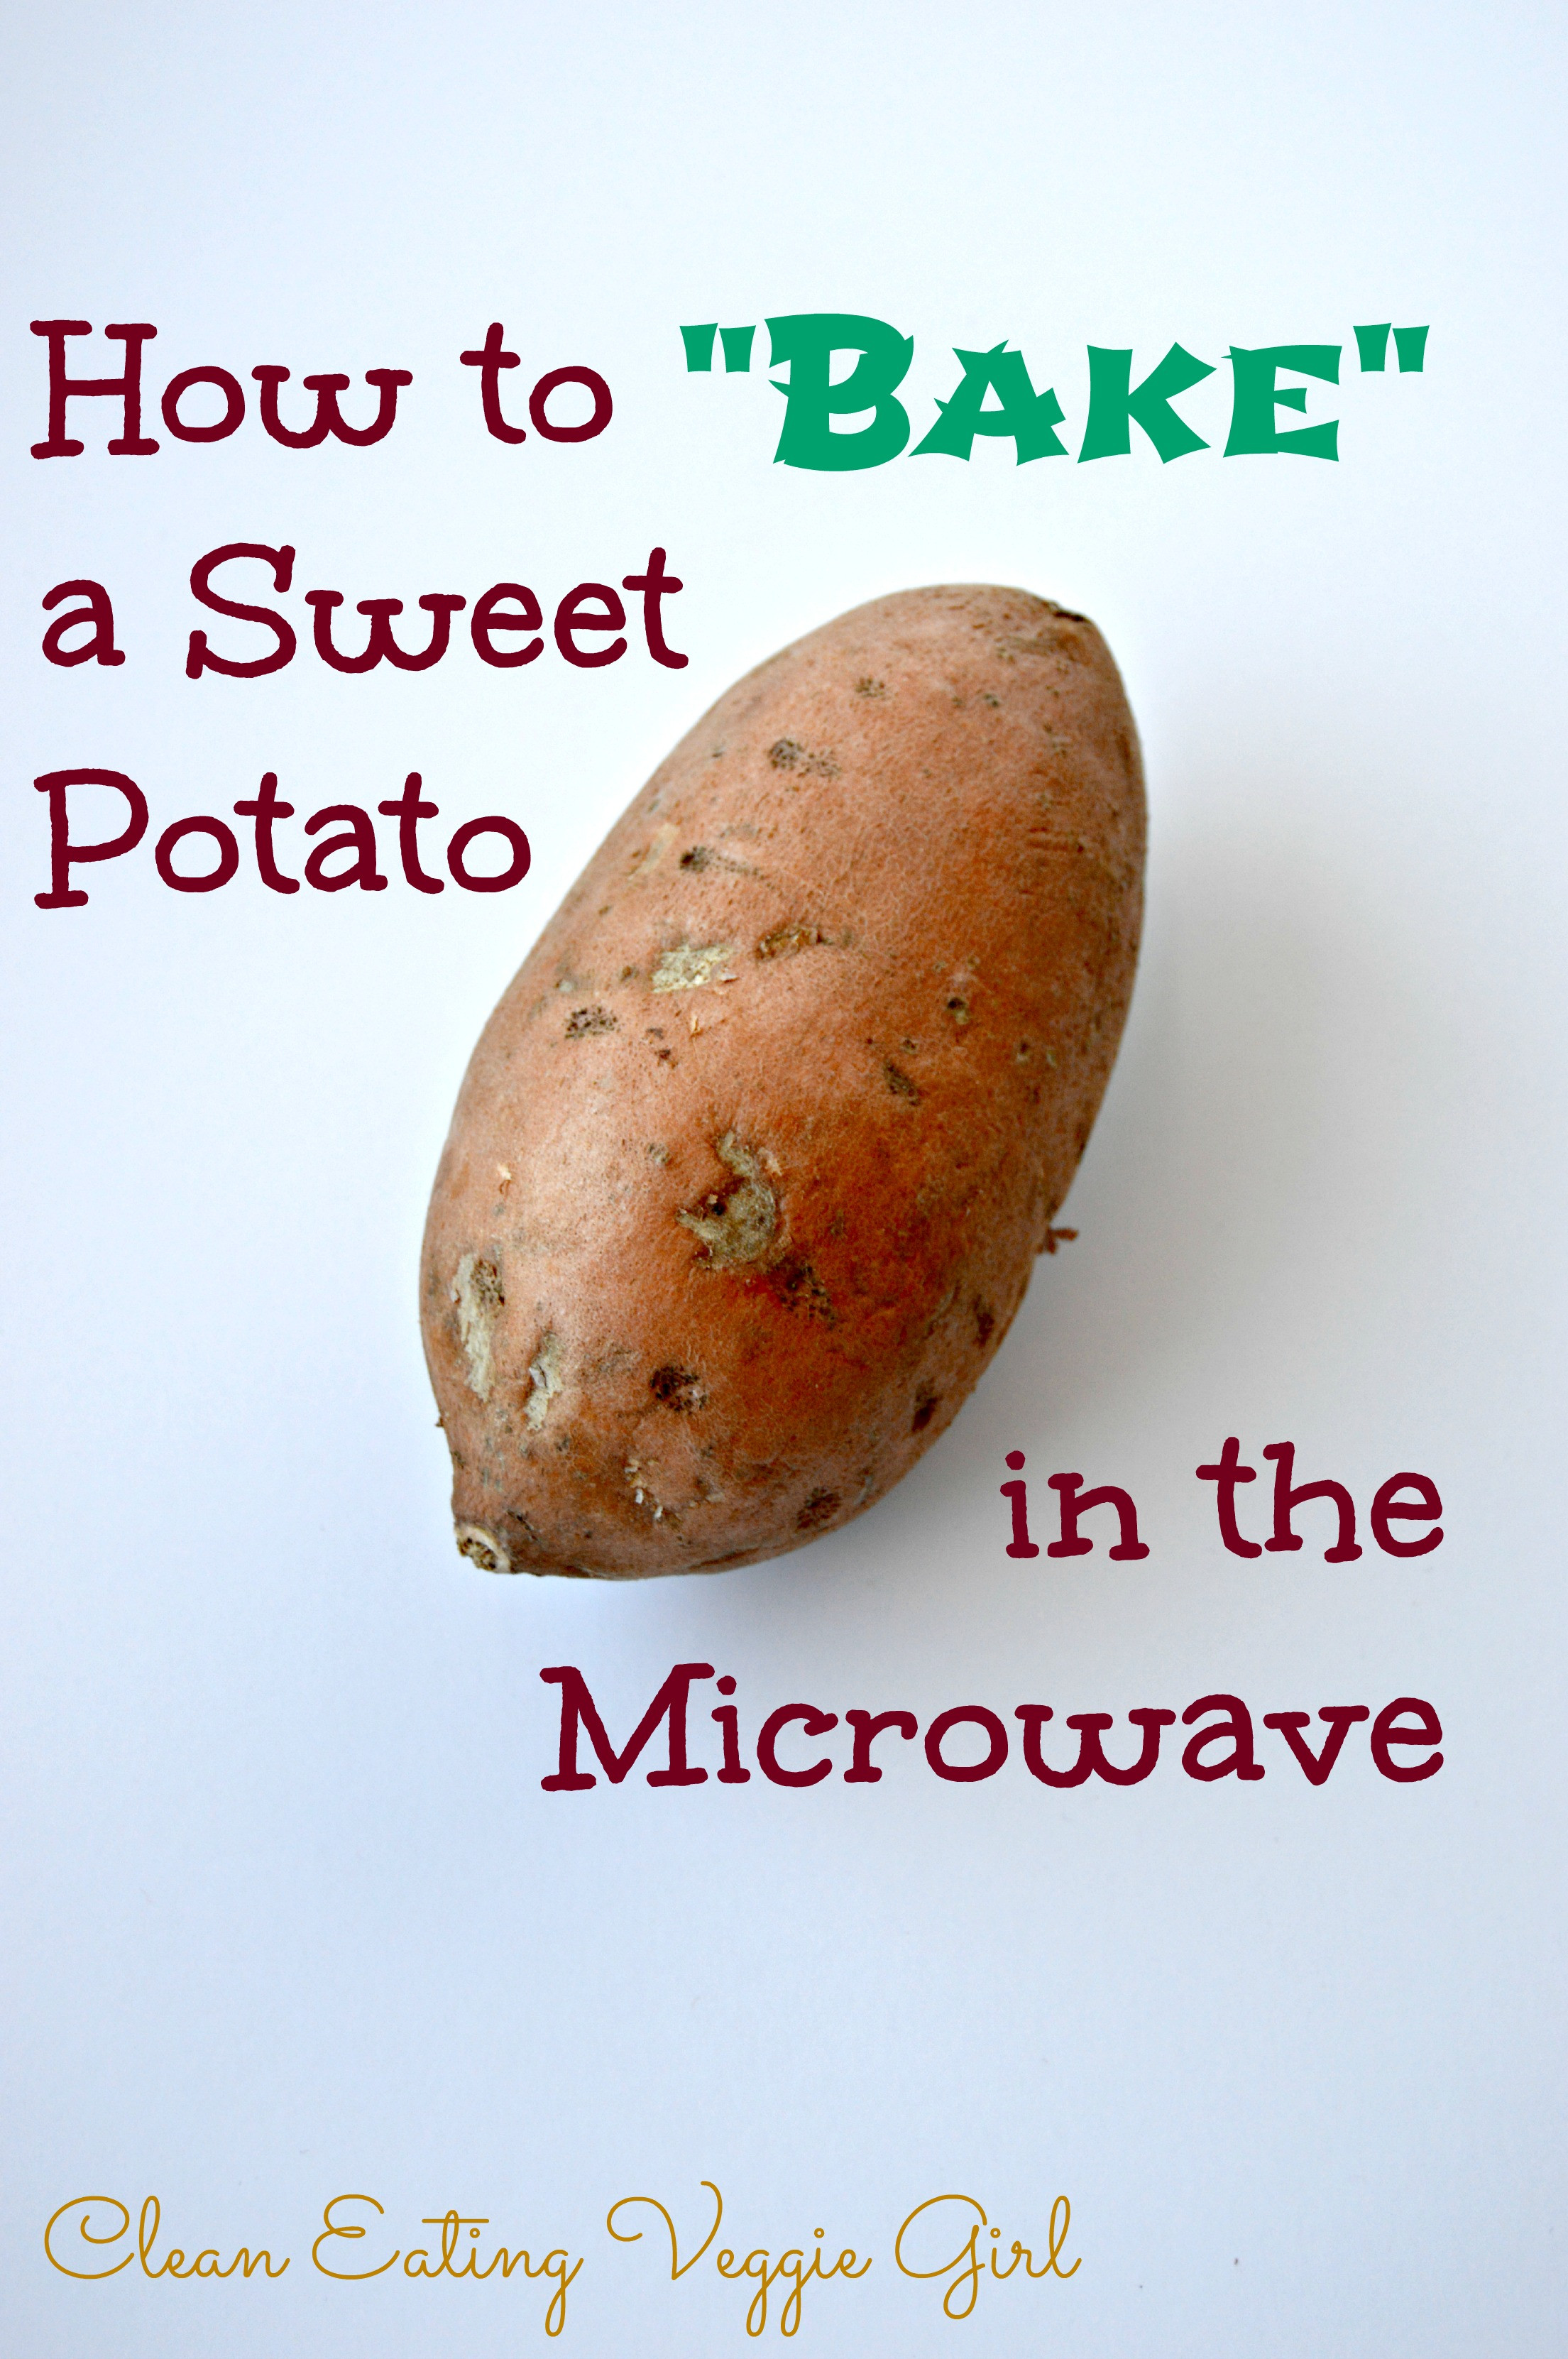 How Long To Cook A Sweet Potato  How to Make a Baked Sweet Potato in the Microwave Clean